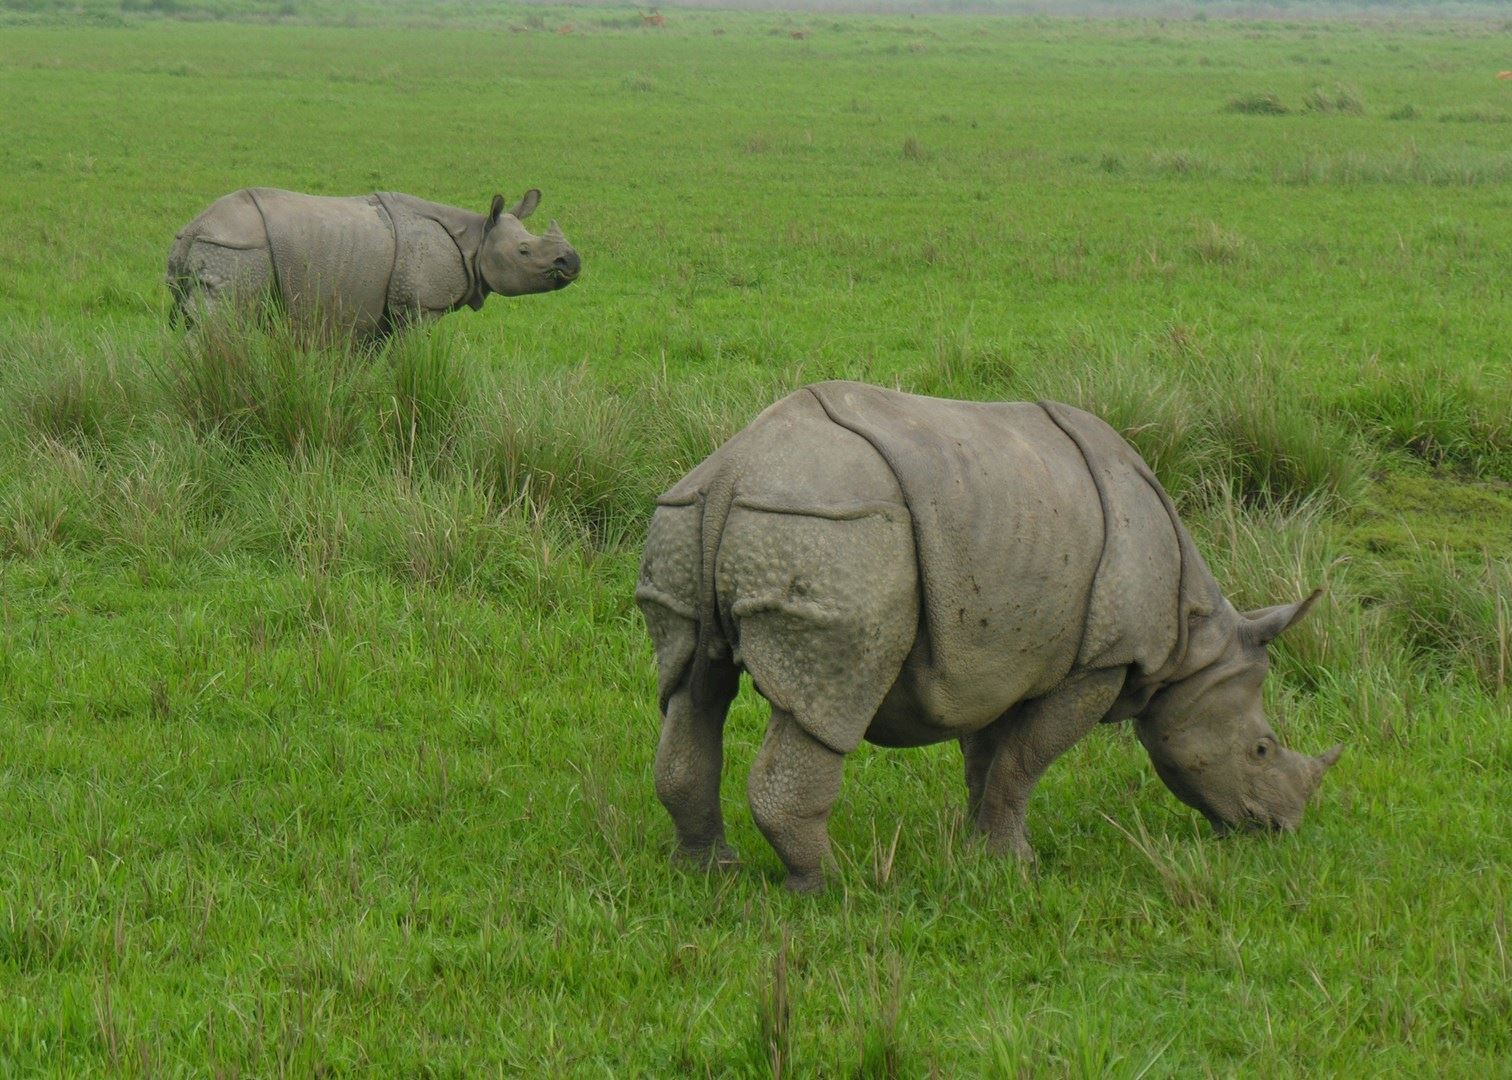 Kaziranga India  City pictures : Visit Kaziranga National Park in India | Audley Travel